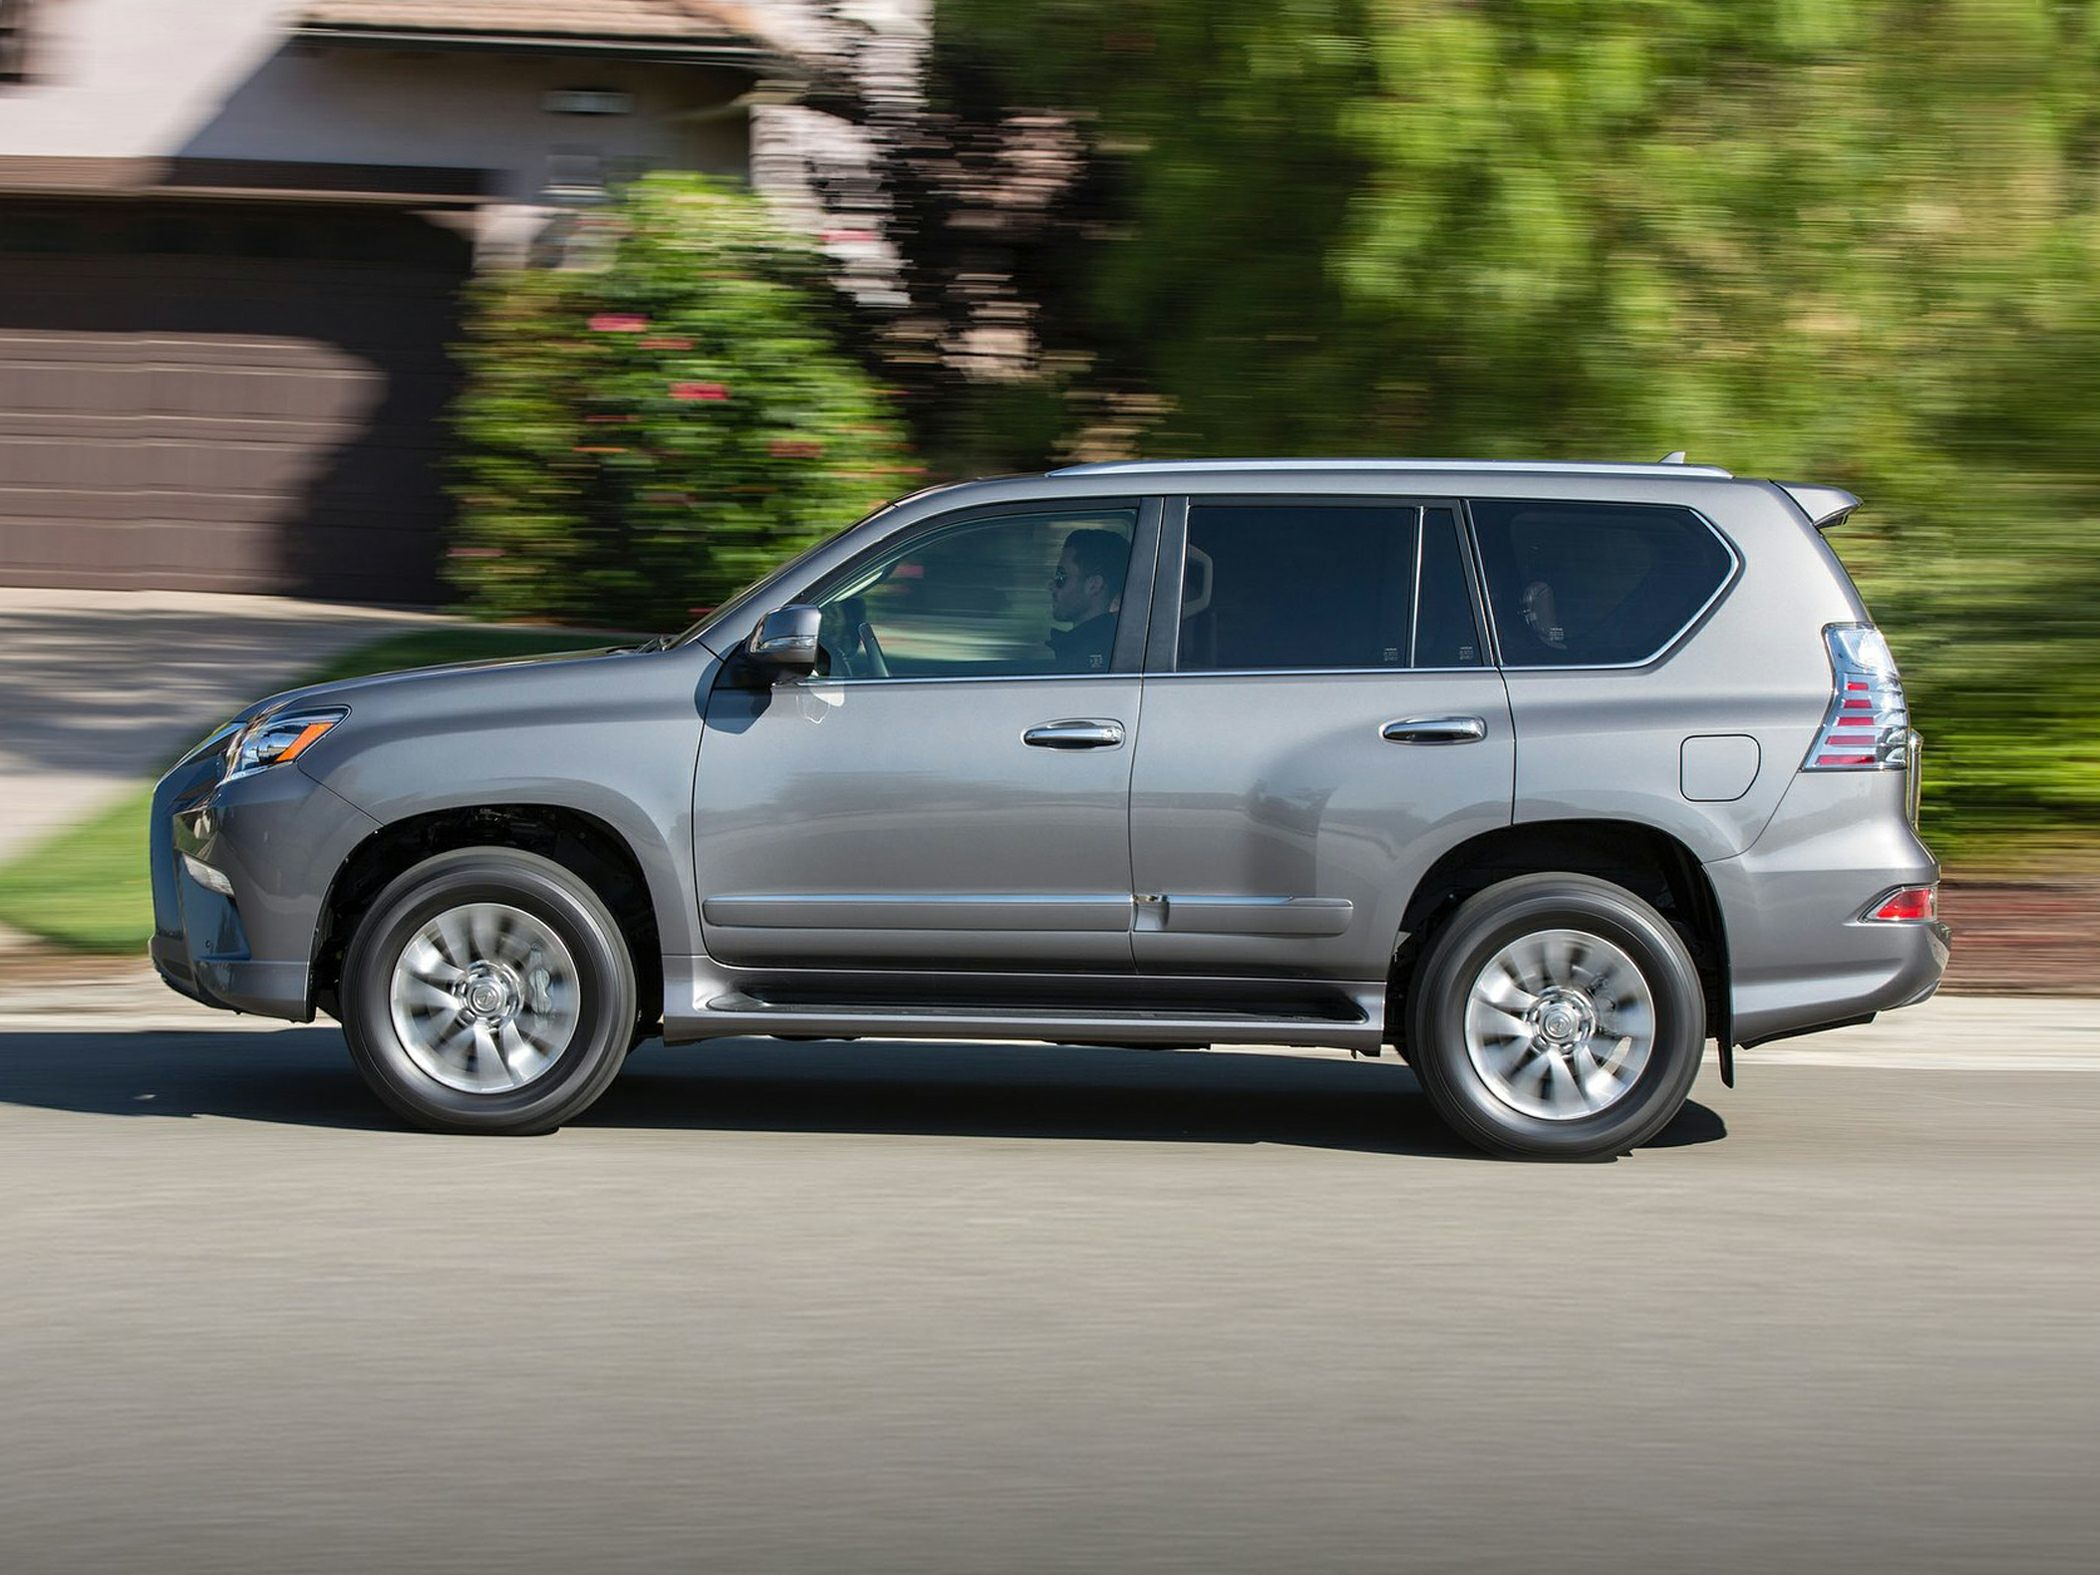 2017 lexus gx 460 deals prices incentives leases overview carsdirect. Black Bedroom Furniture Sets. Home Design Ideas